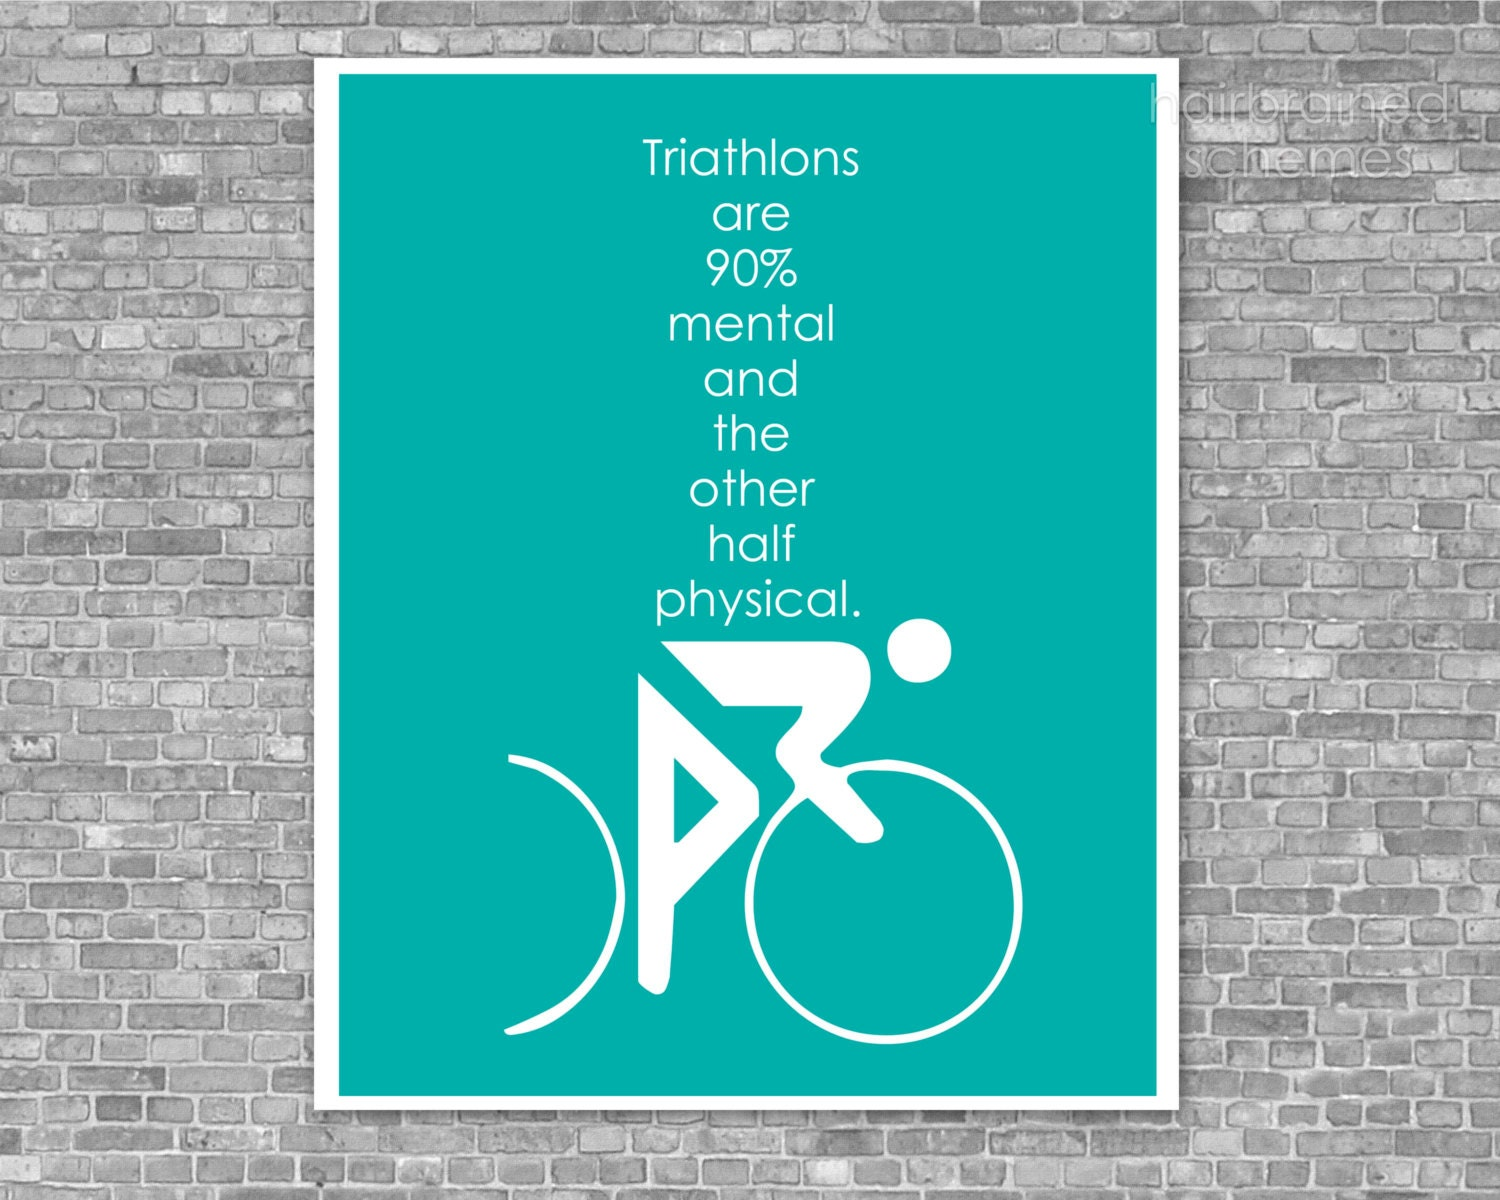 Fitness Poster - Funny Triathlon Digital Art Print - Swim Bike Run ...: www.etsy.com/listing/80780340/fitness-poster-funny-triathlon-digital